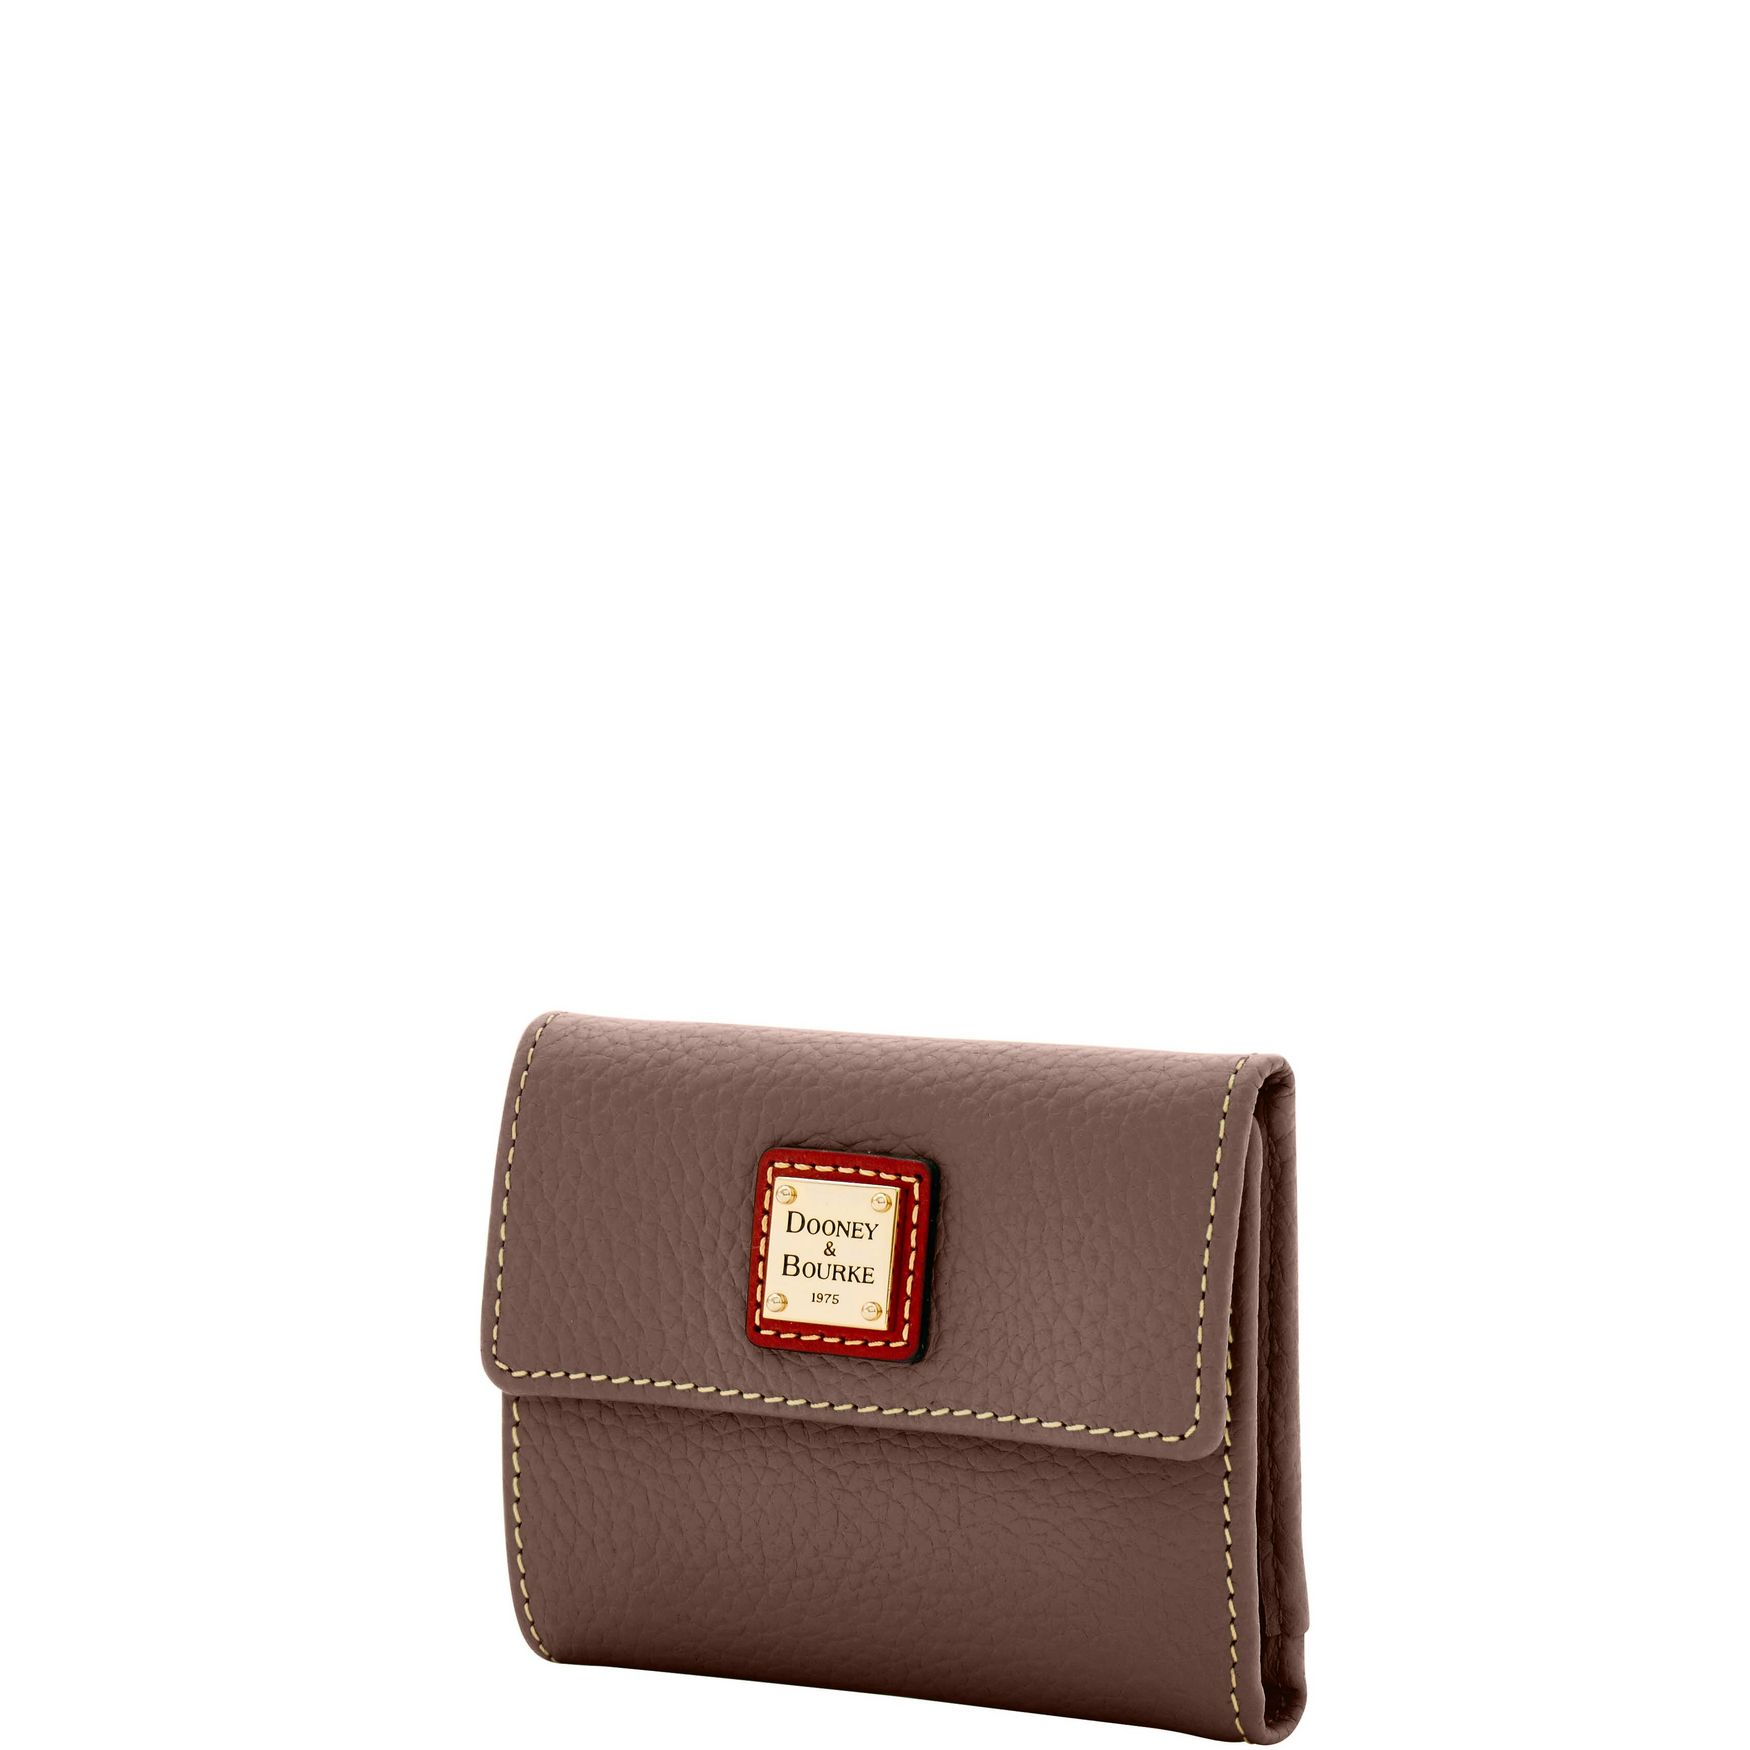 Dooney-amp-Bourke-Pebble-Grain-Small-Flap-Wallet thumbnail 32